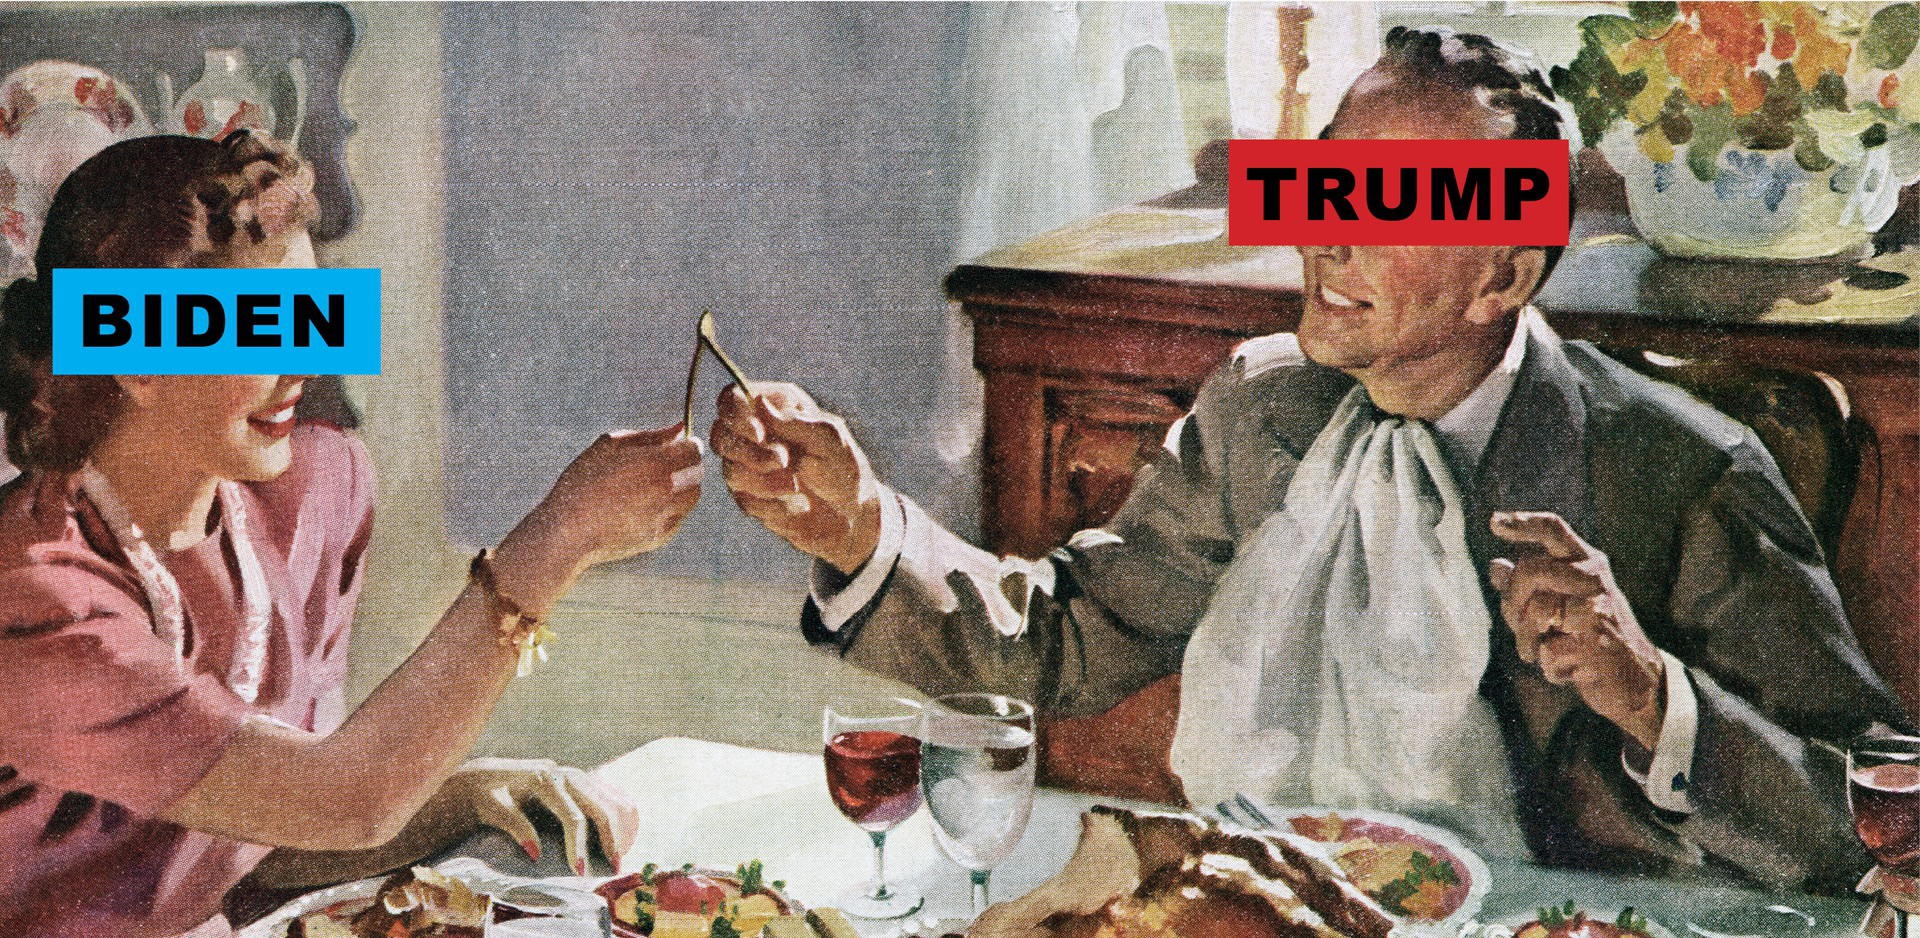 Vintage illustration of a husband + wife pulling the wishbone; the wife's face has text Biden on it, and the husband's Trump